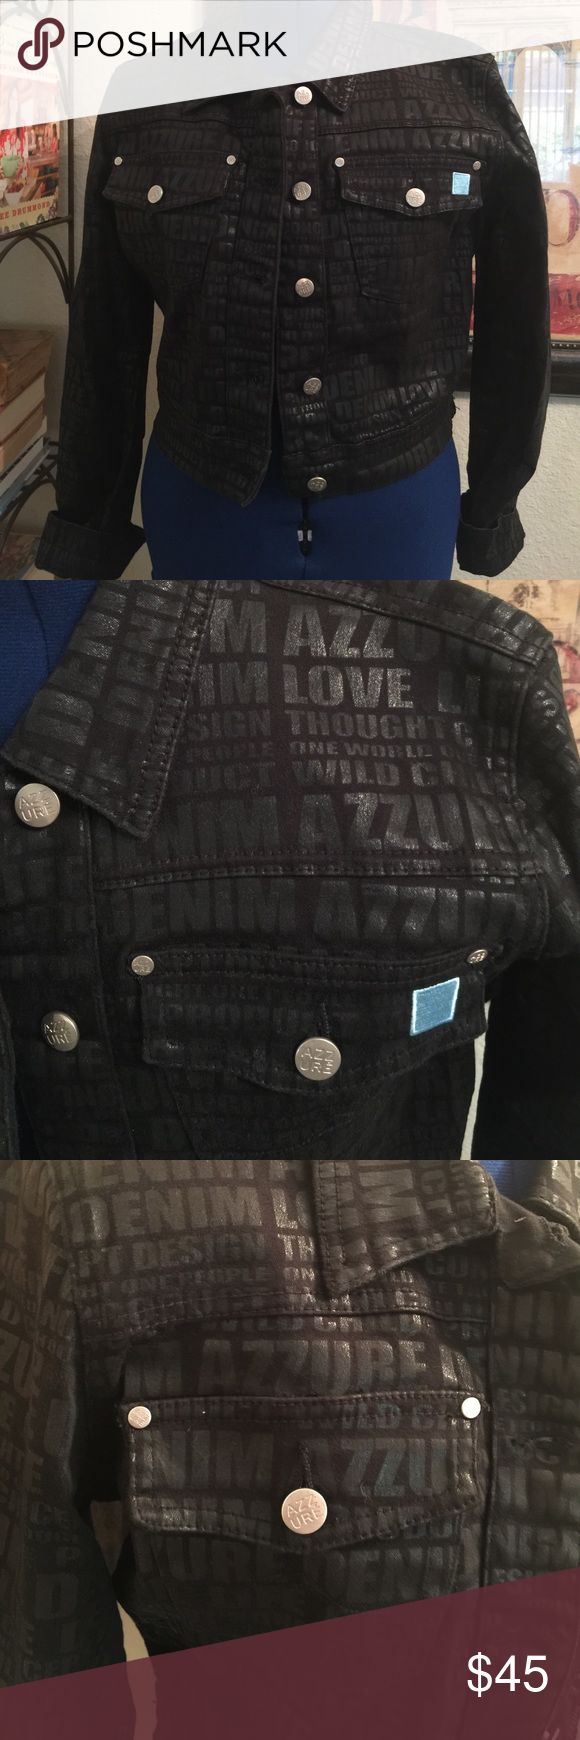 """Azzure Urban Cropped Black Jean Denim Jacket 98% cotton 2% spandex. wording phrases on Jacket AZZURE DENIM ; LOVE LIFE DENIM; CONCEPT DESIGN THOUGHT; ONE WORLD ONE THOUGHT ONE PEOPLE ; WILD CHILD PRODUCT.  Two button down front chest pockets.  Platinum colored metal buttons and rivets.   Tag size Large. Measurements:  24.75 Shoulder seam to end of cuff; Cuff  5.25"""";  Chest 20"""" underarm to underarm; Side length 10"""" underarm to hem;  Bottom hem 16.25"""" across side seam to side seam; Shoulders…"""